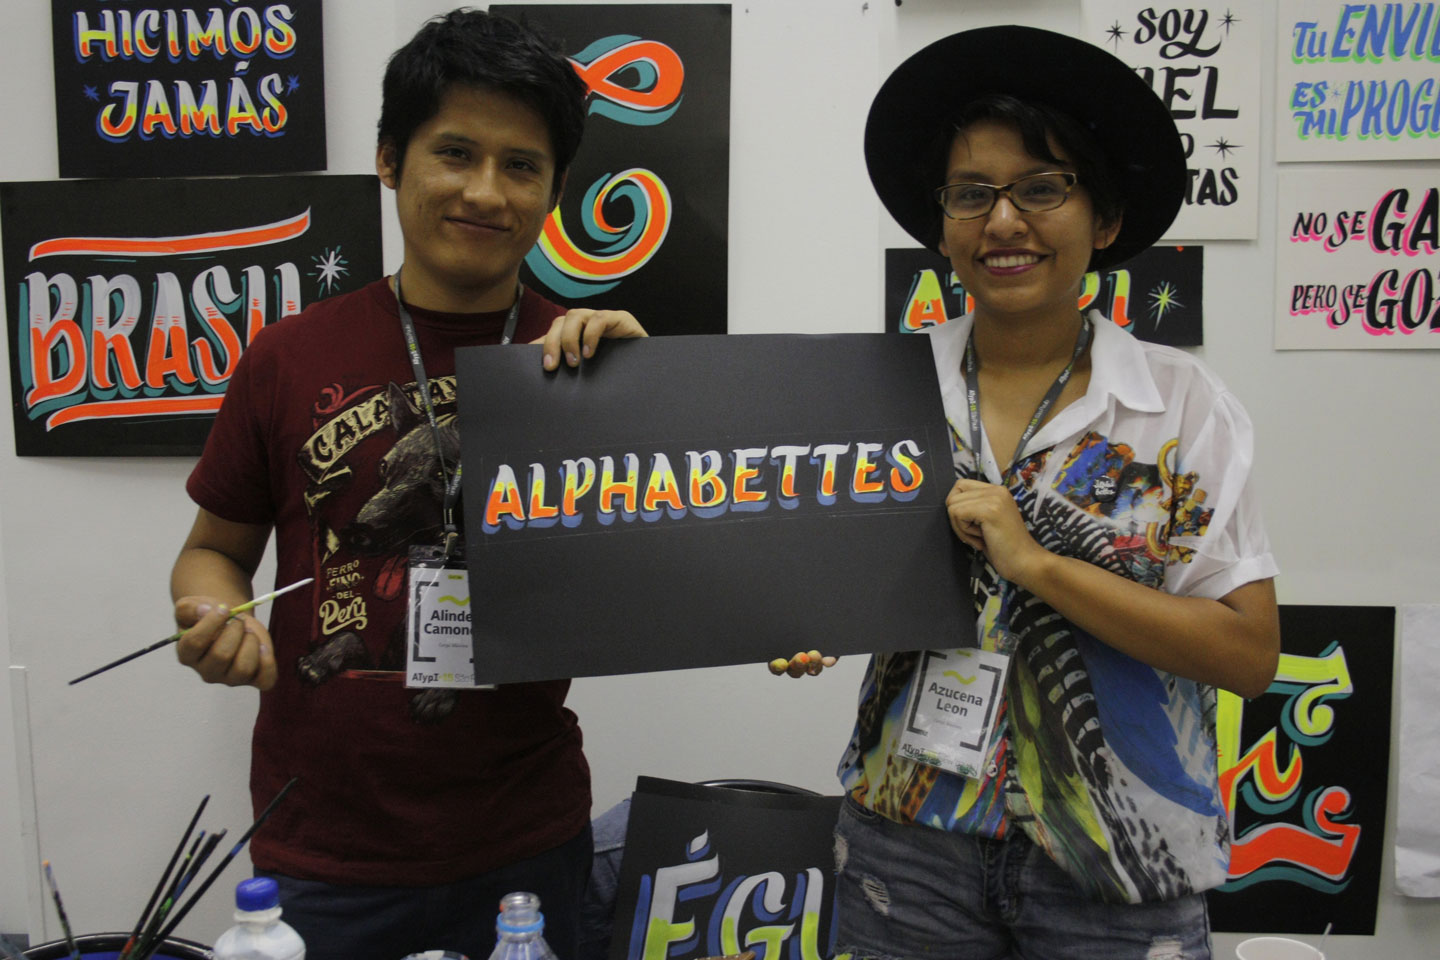 Alinder and Azucena holding the Alphabettes header